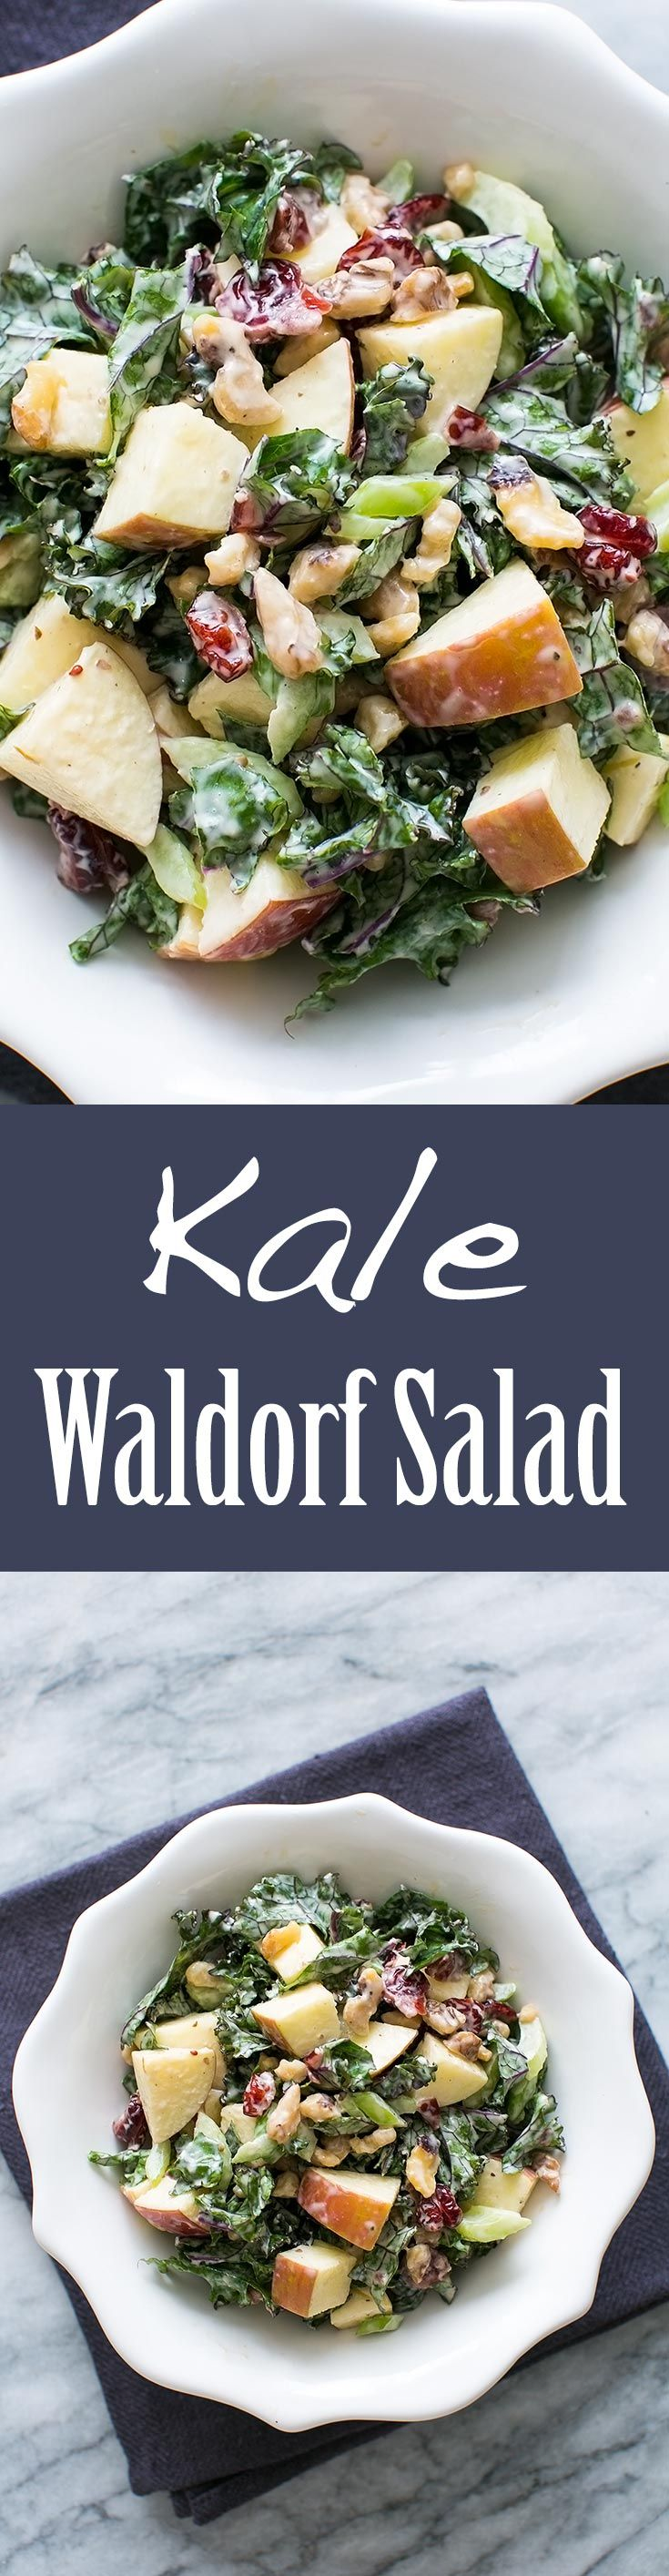 Best kale salad ever! A kale waldorf salad with apples, celery, walnuts, dried cranberries, and tangy mayo dressing